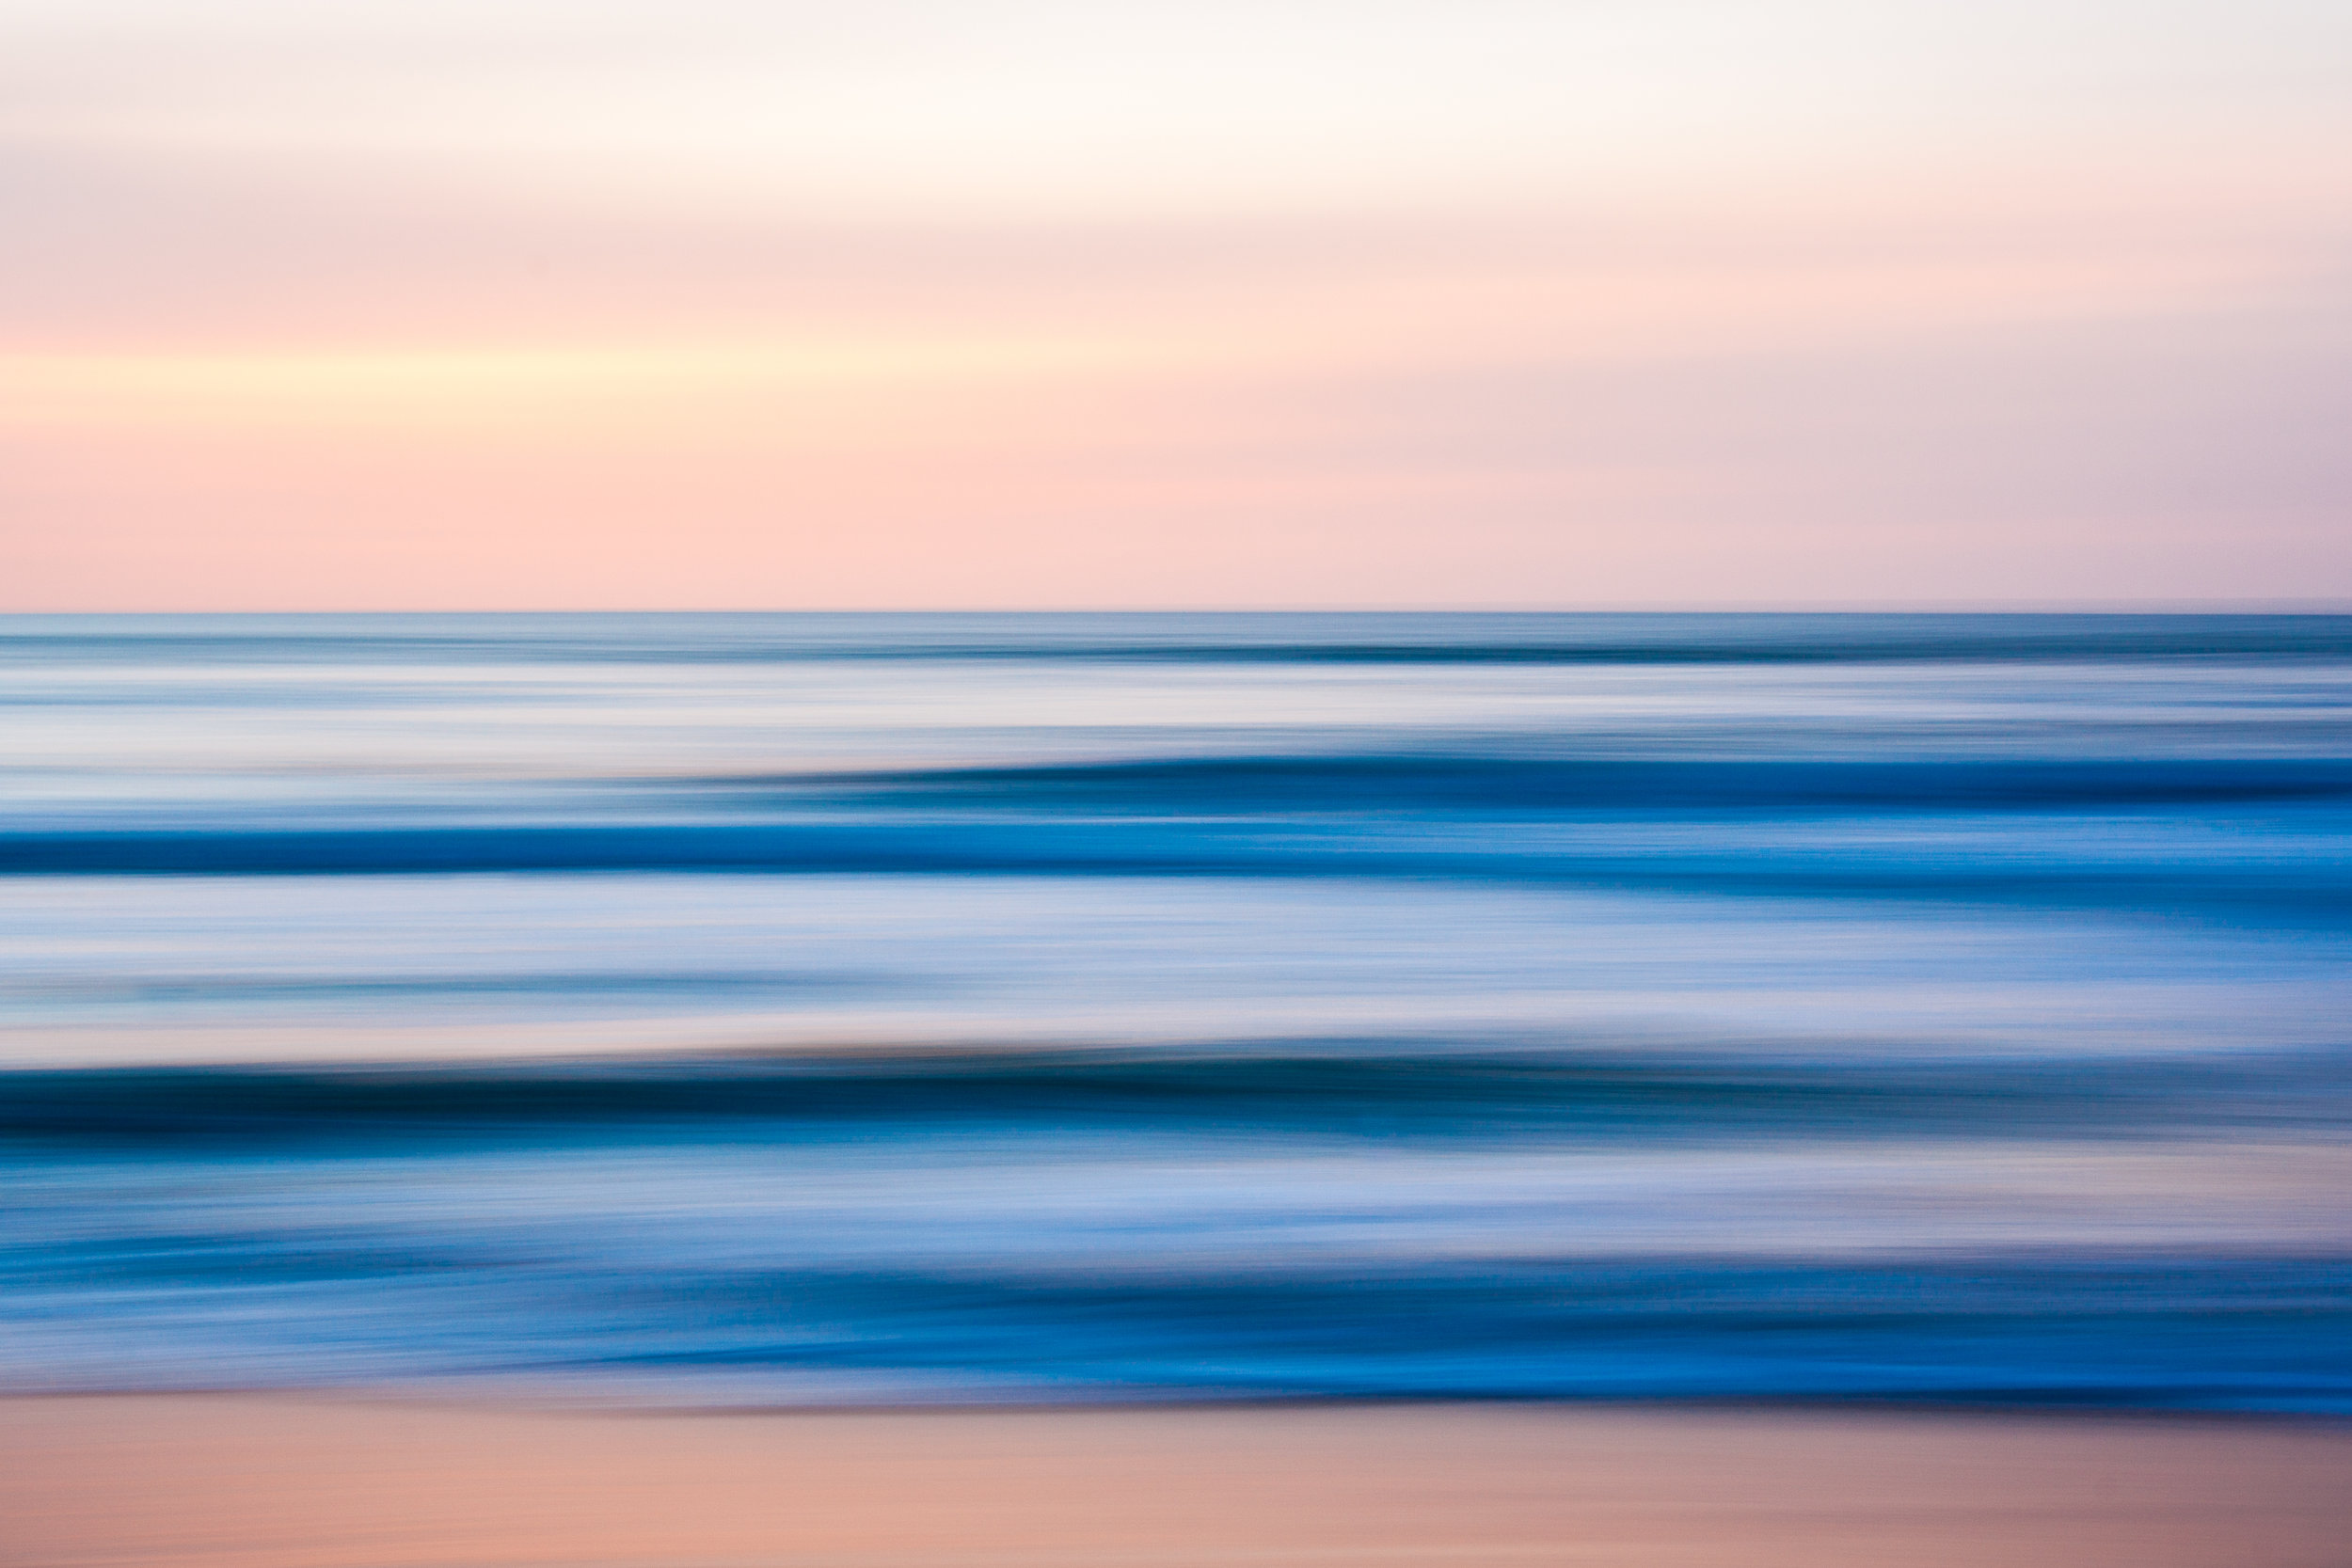 How to take abstract photography by Geraint Rowland.